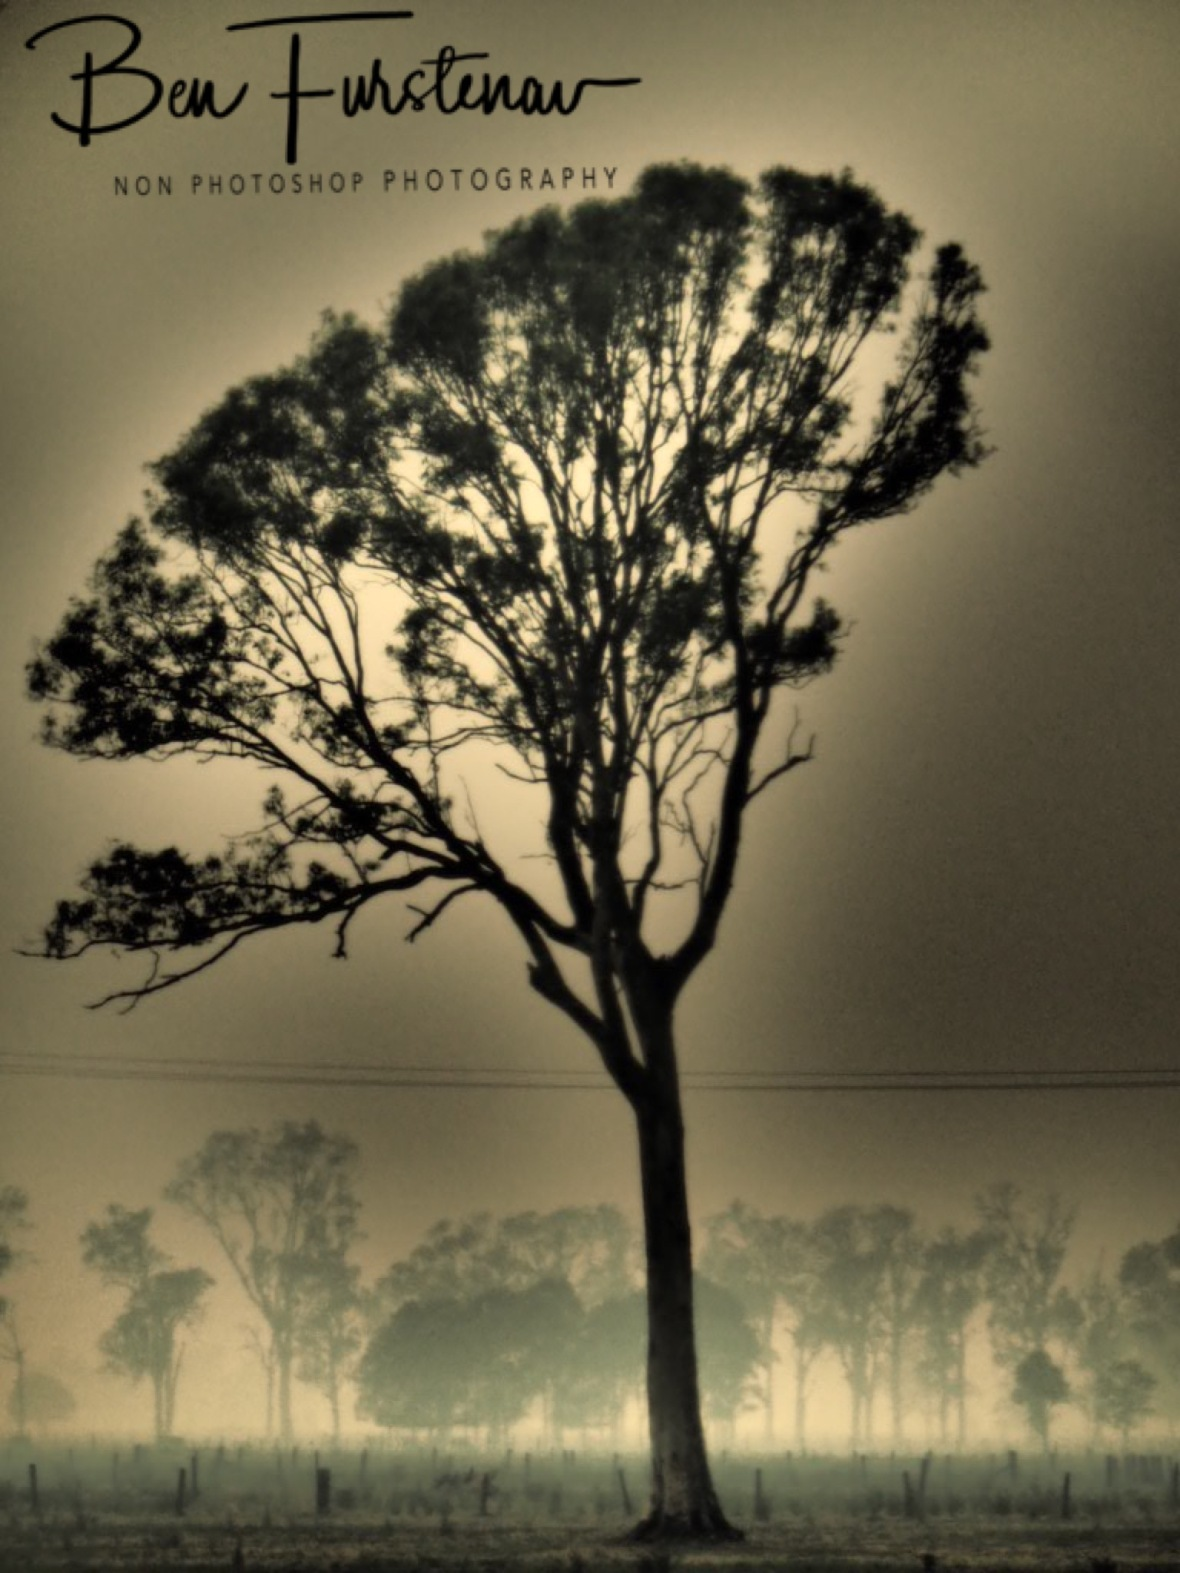 Surreal images in Australia, Northern New South Wales